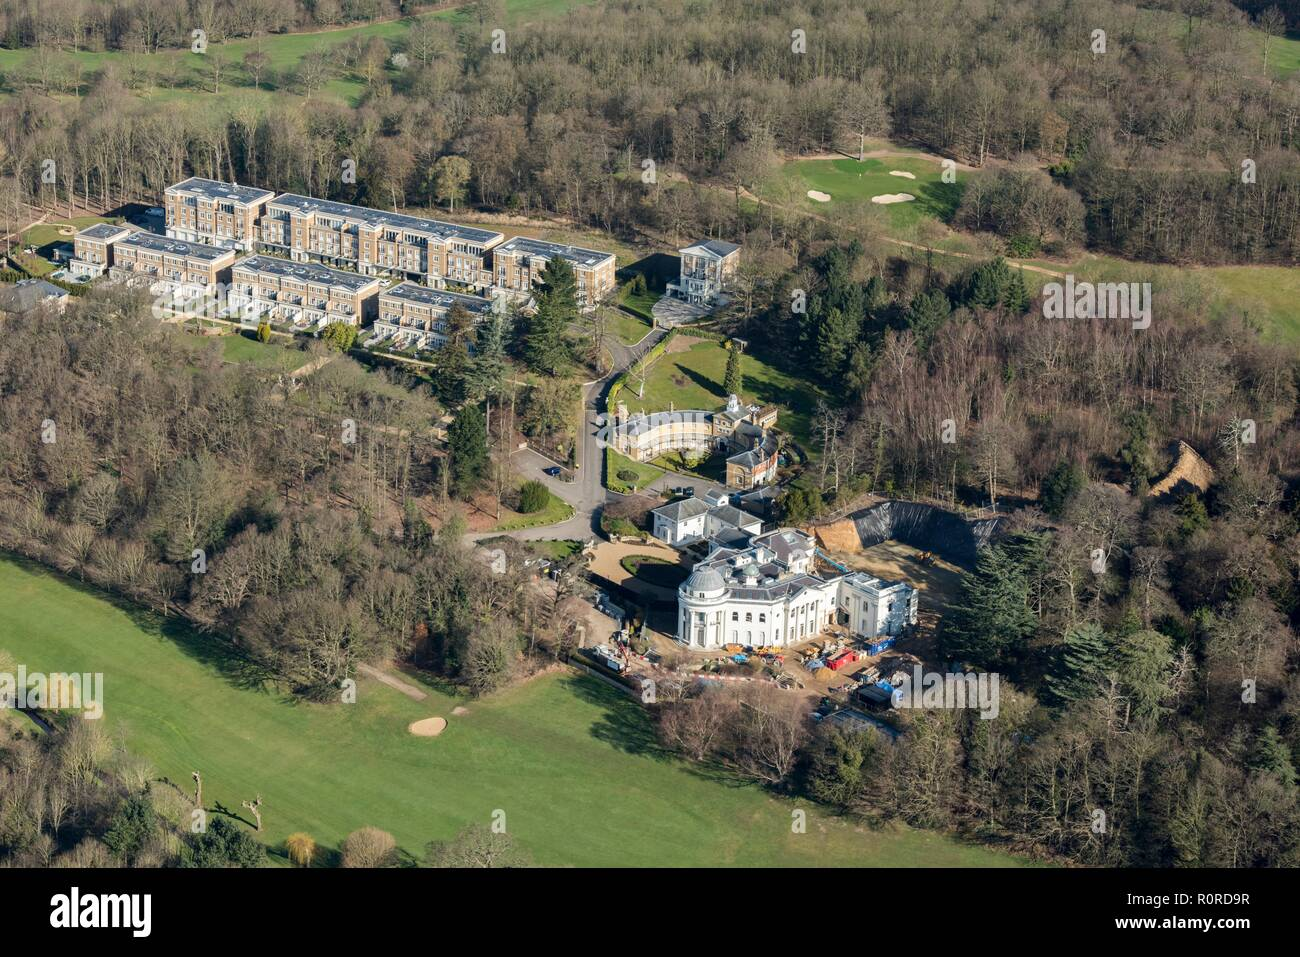 Sundridge Park Mansion, Sundridge Park, Bromley, London, 2018. View of the house, designed by John Nash and completed by Samuel Wyatt, during conversion to residential dwellings. The new Repton Court development of town houses and apartments is visible in the left background. - Stock Image